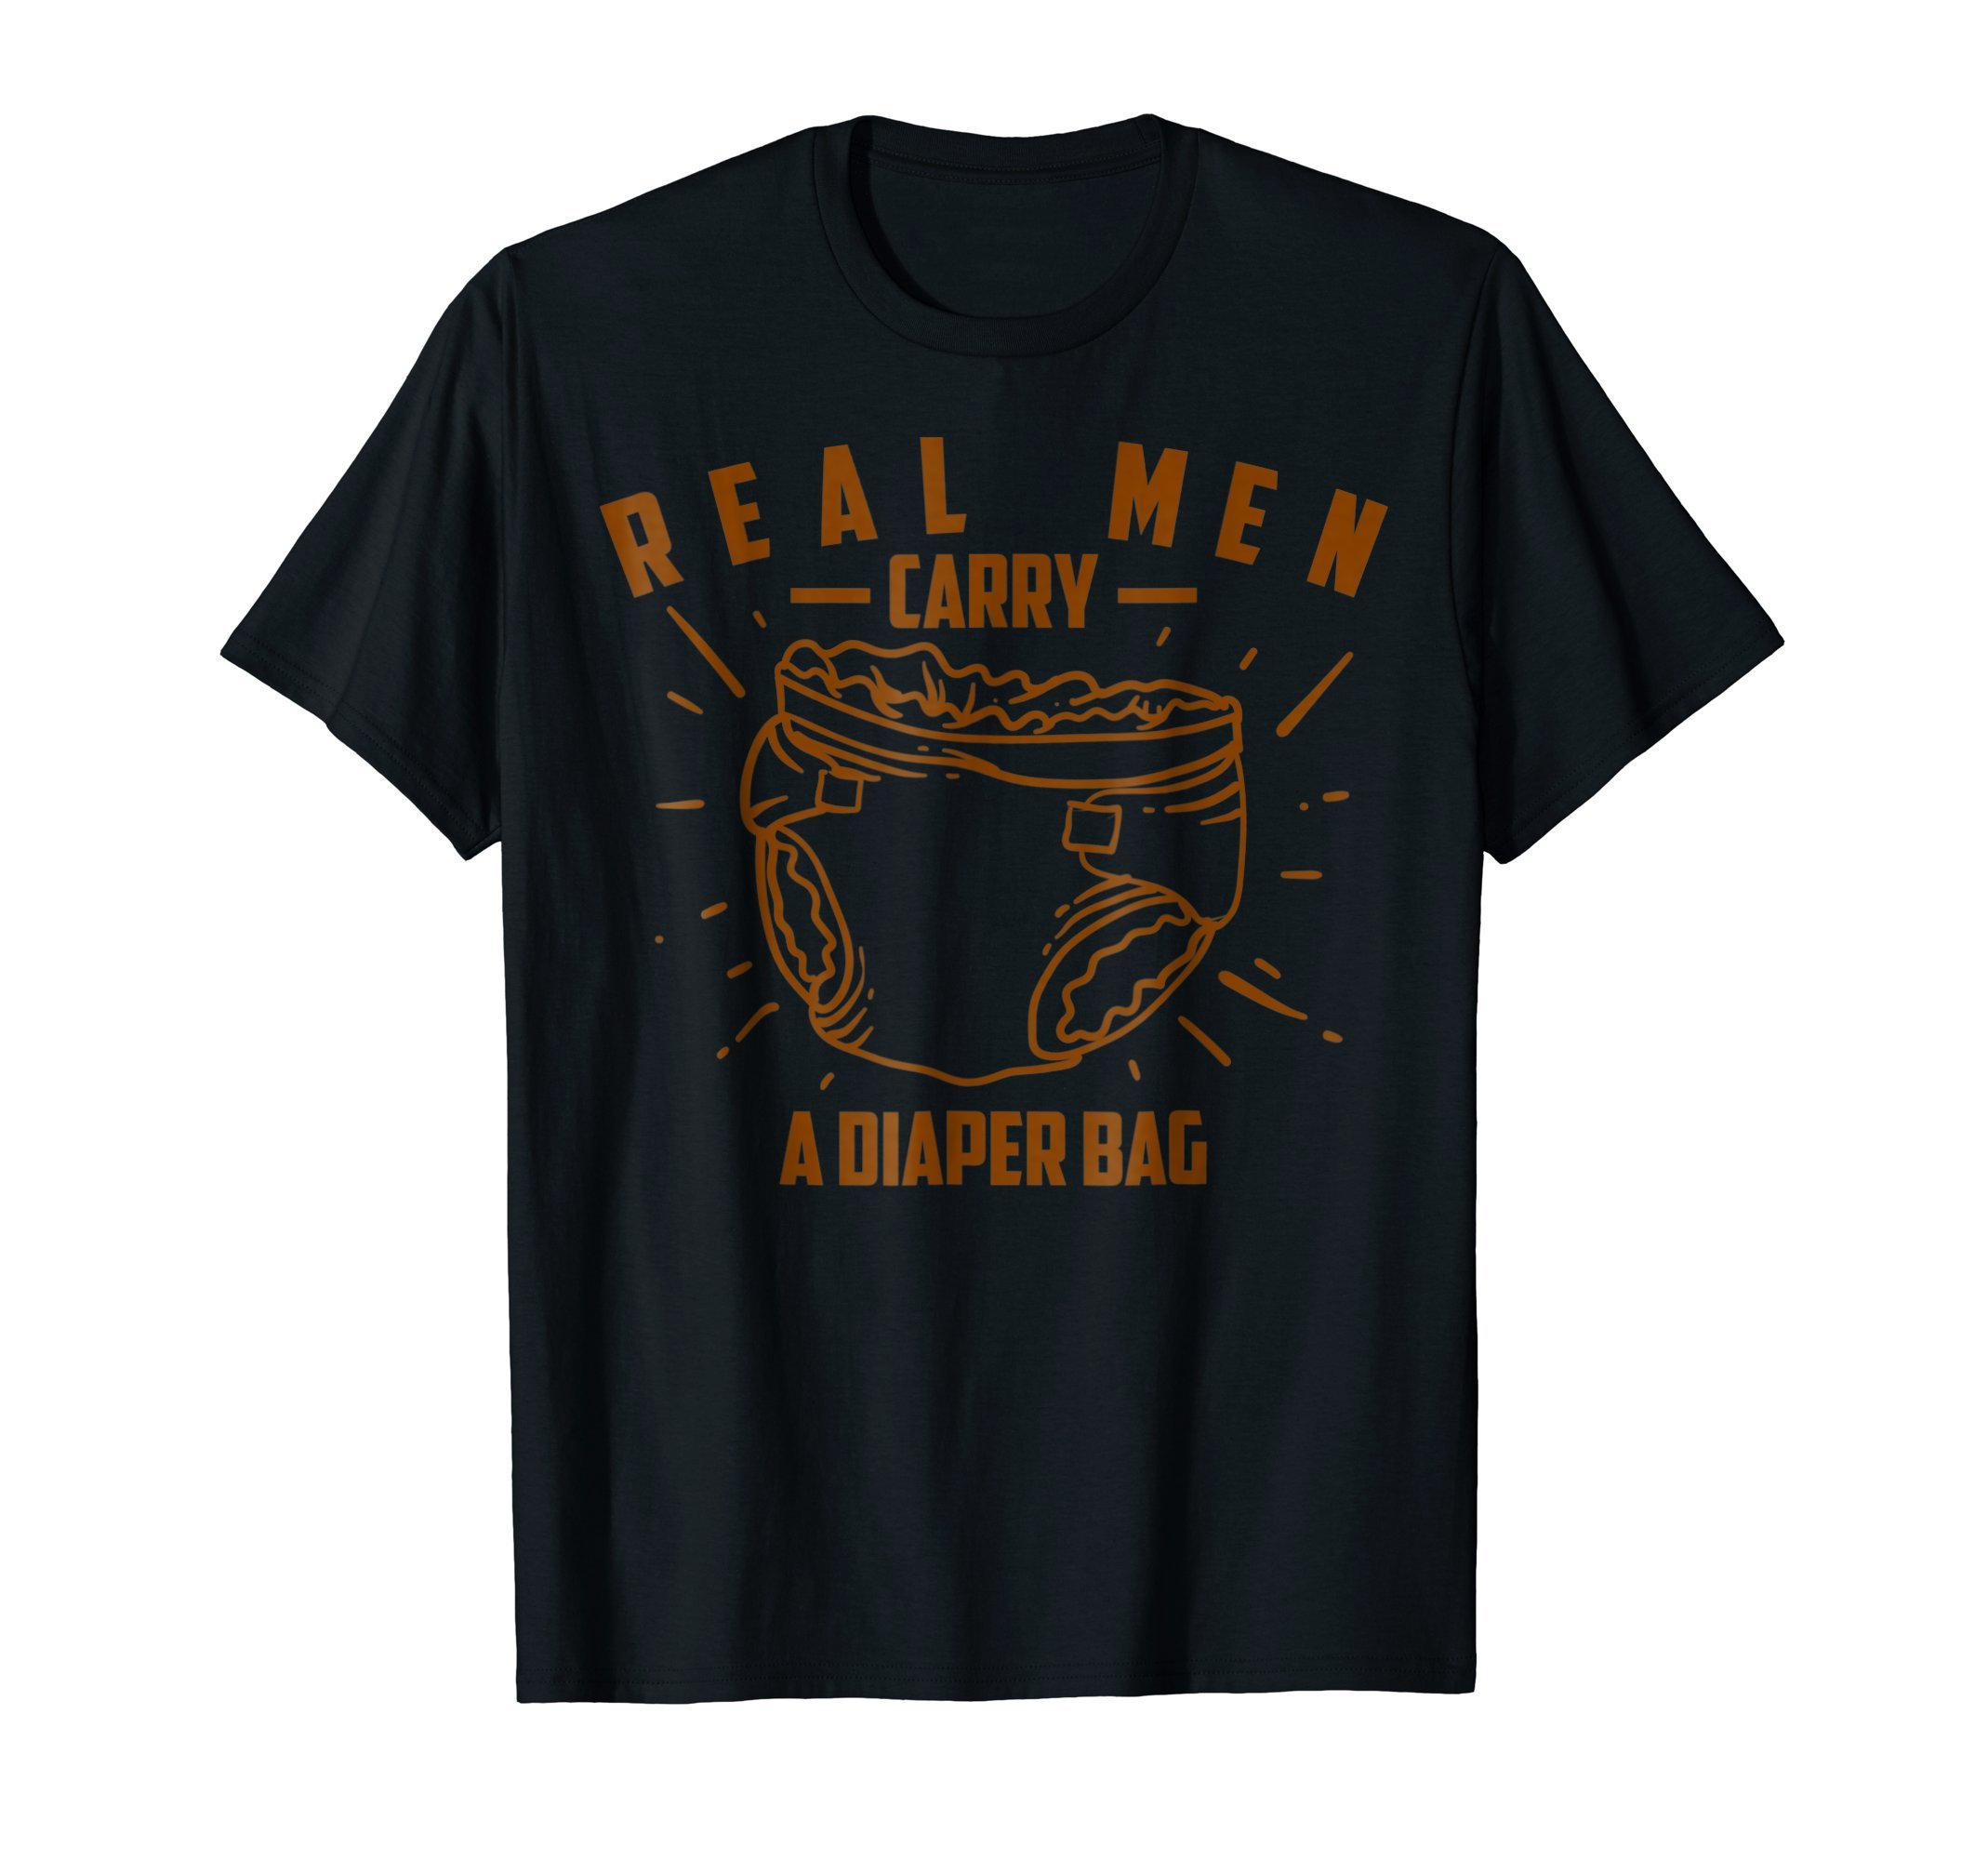 Real Men Carry A Diaper Bag Shirt | Cool True Dads Tee Gift